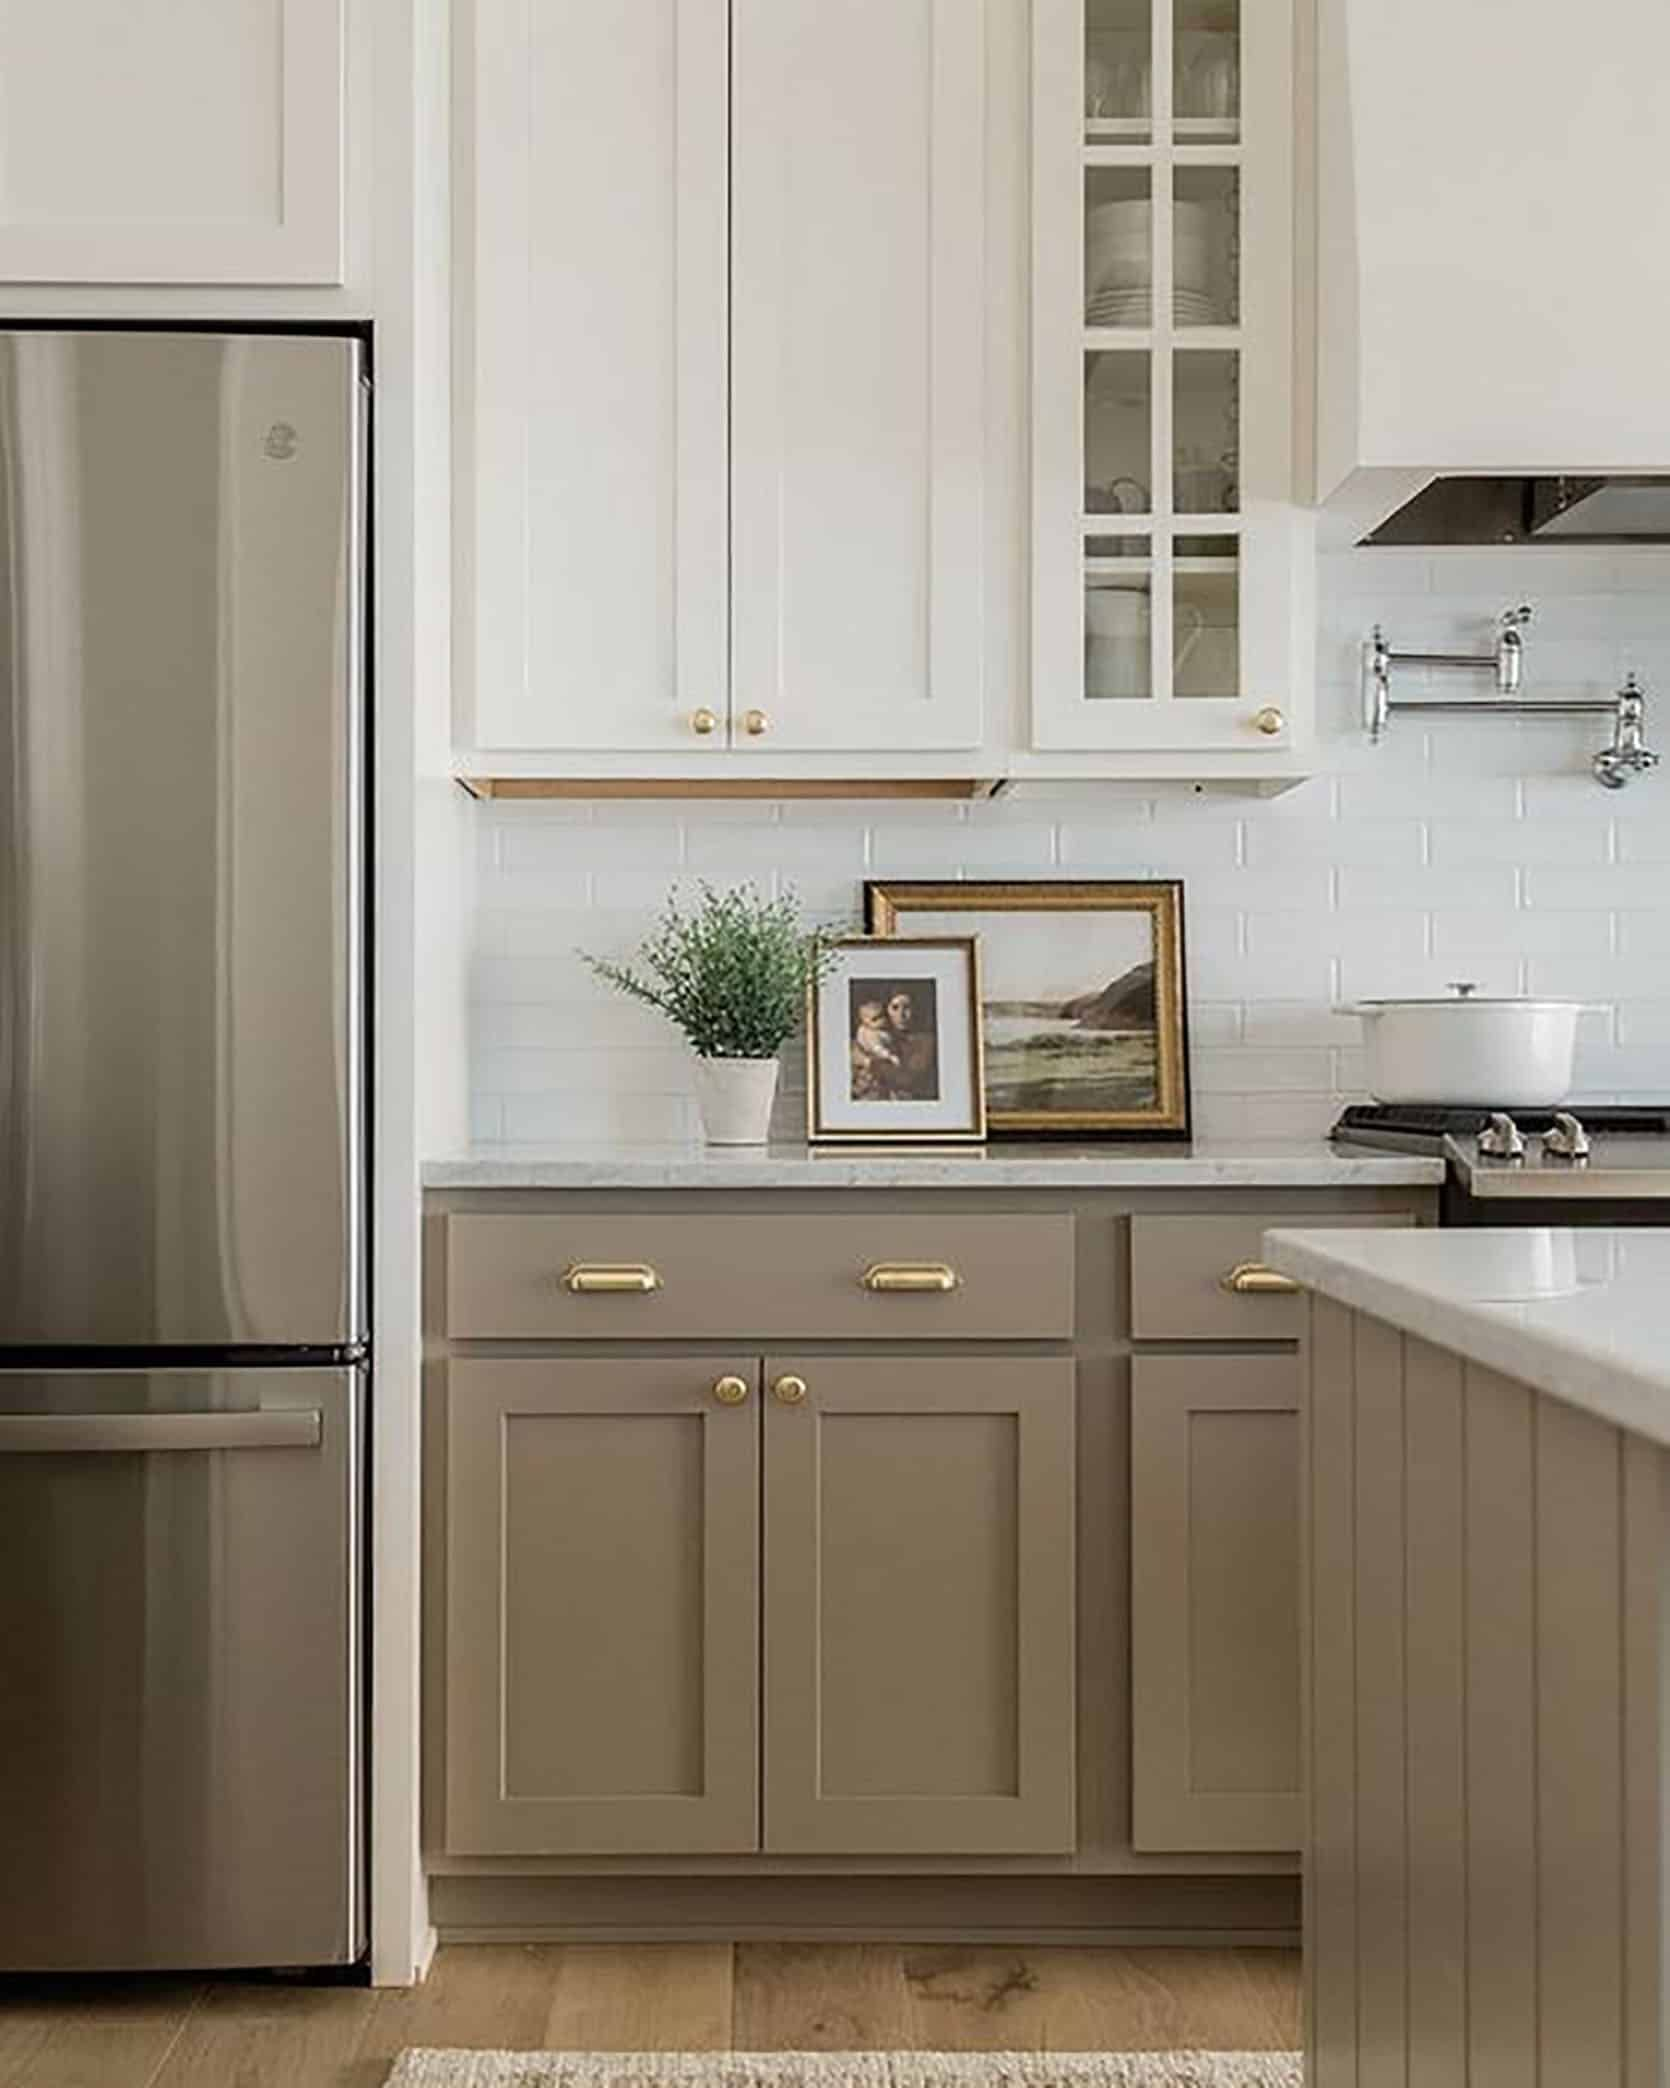 Sara S Kitchen Update Spirals Into A Full Renovation Plus Help Her Choose A Design Plan Emily Henderson In 2020 Diy Kitchen Renovation Taupe Kitchen Cabinets Kitchen Renovation